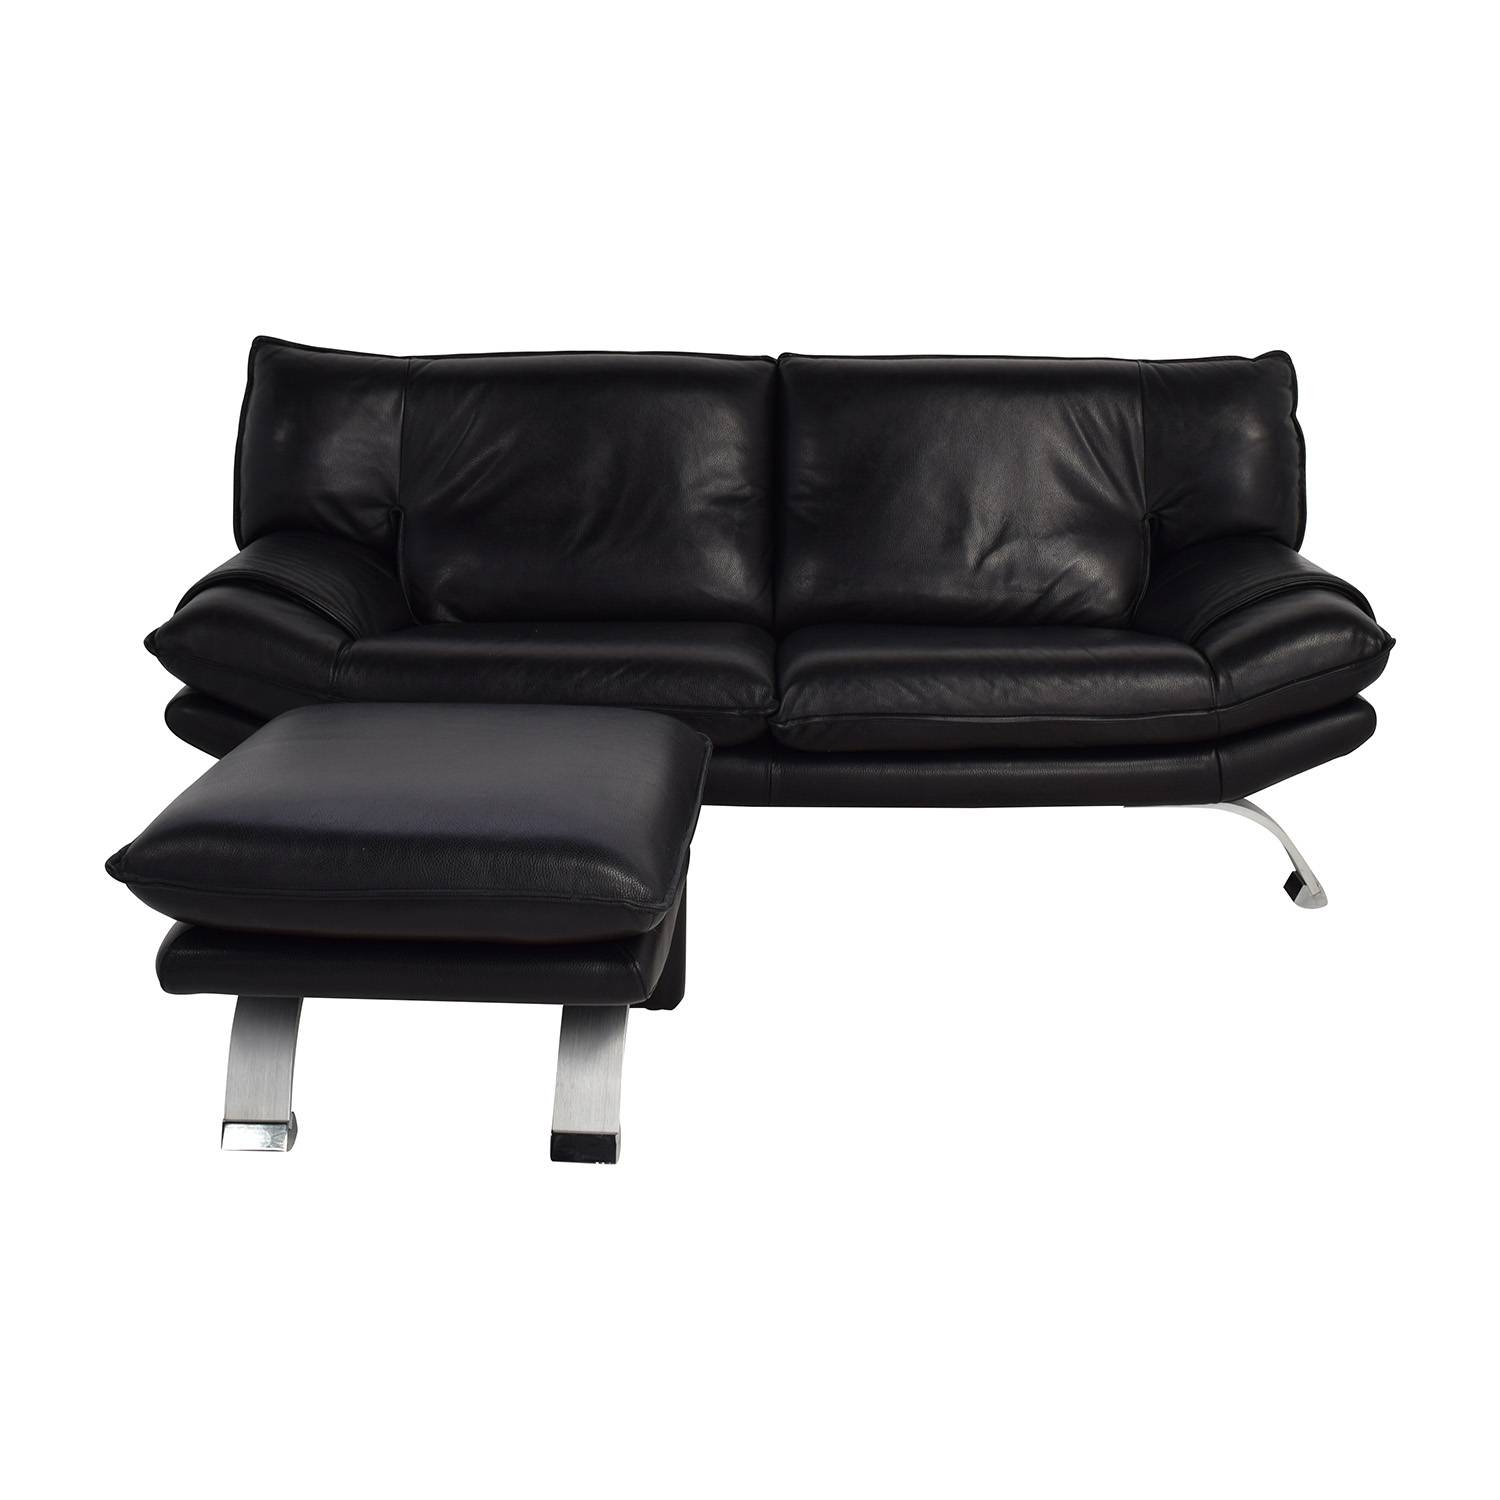 76% Off - Nicolletti Nicolletti Black Leather Sofa And Ottoman / Sofas inside Classic Sofas For Sale (Image 9 of 30)